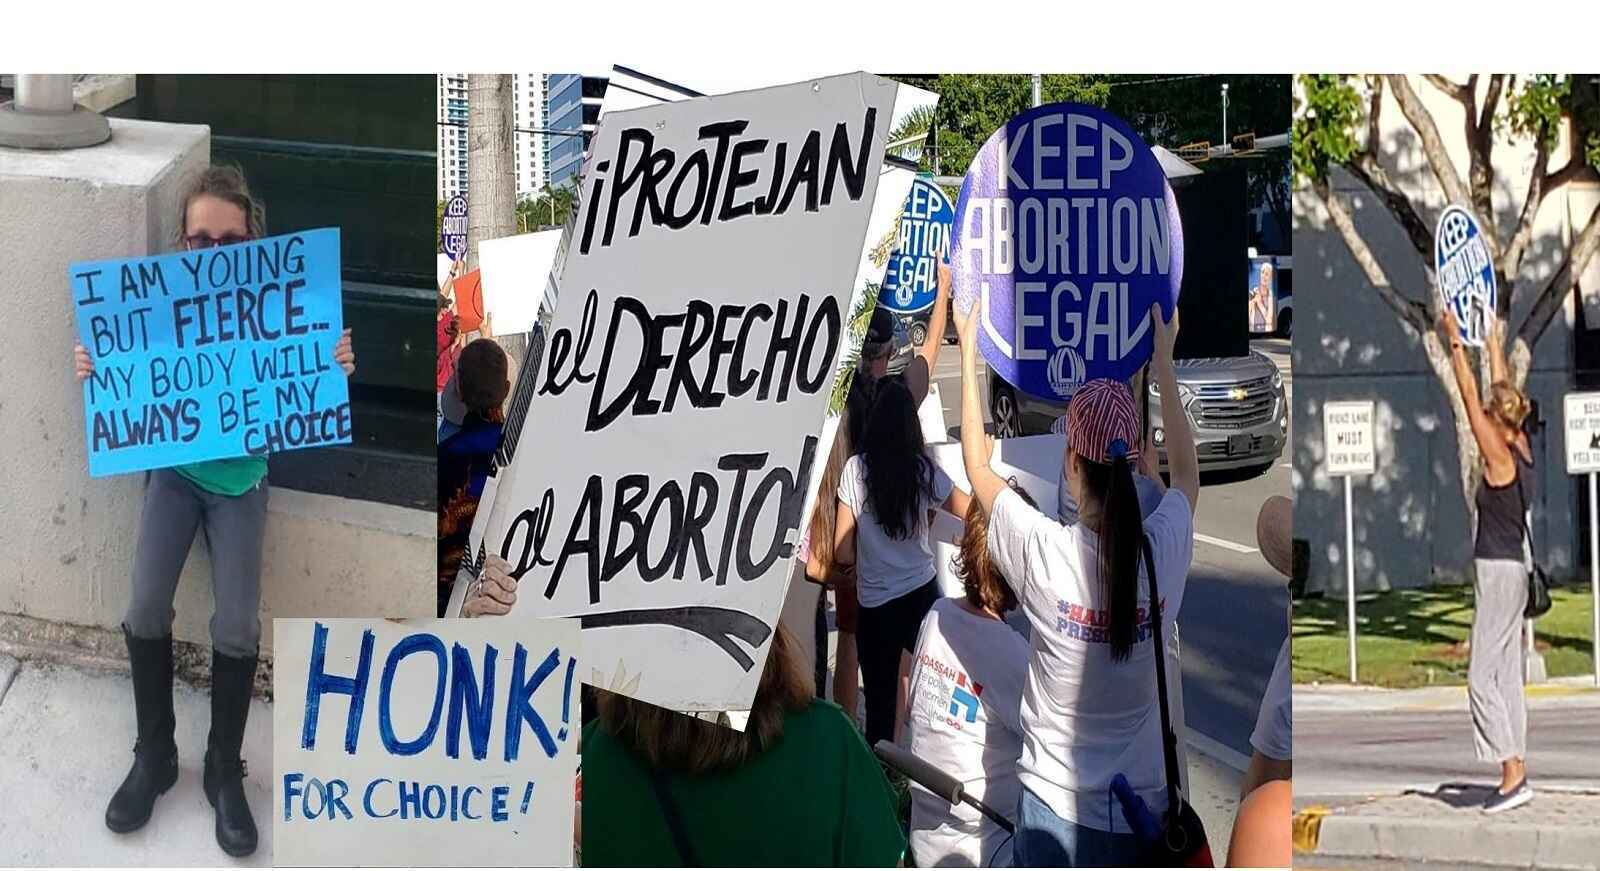 Fund Abortion Care Now! image